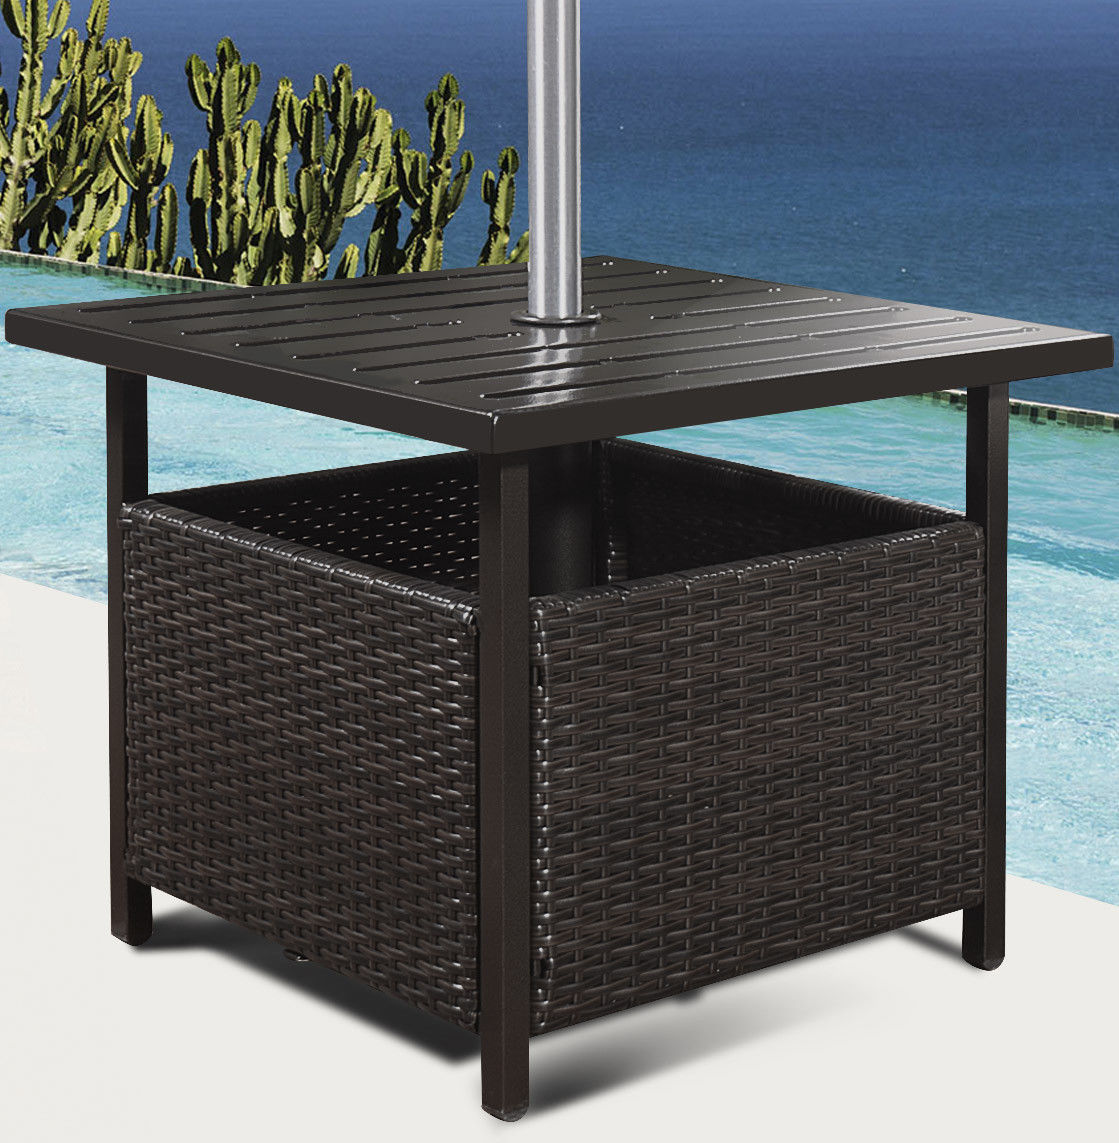 way brown rattan wicker steel side table outdoor furniture deck patio umbrella accent garden pool marble top coffee and end tables acrylic dining chairs bunnings home goods small